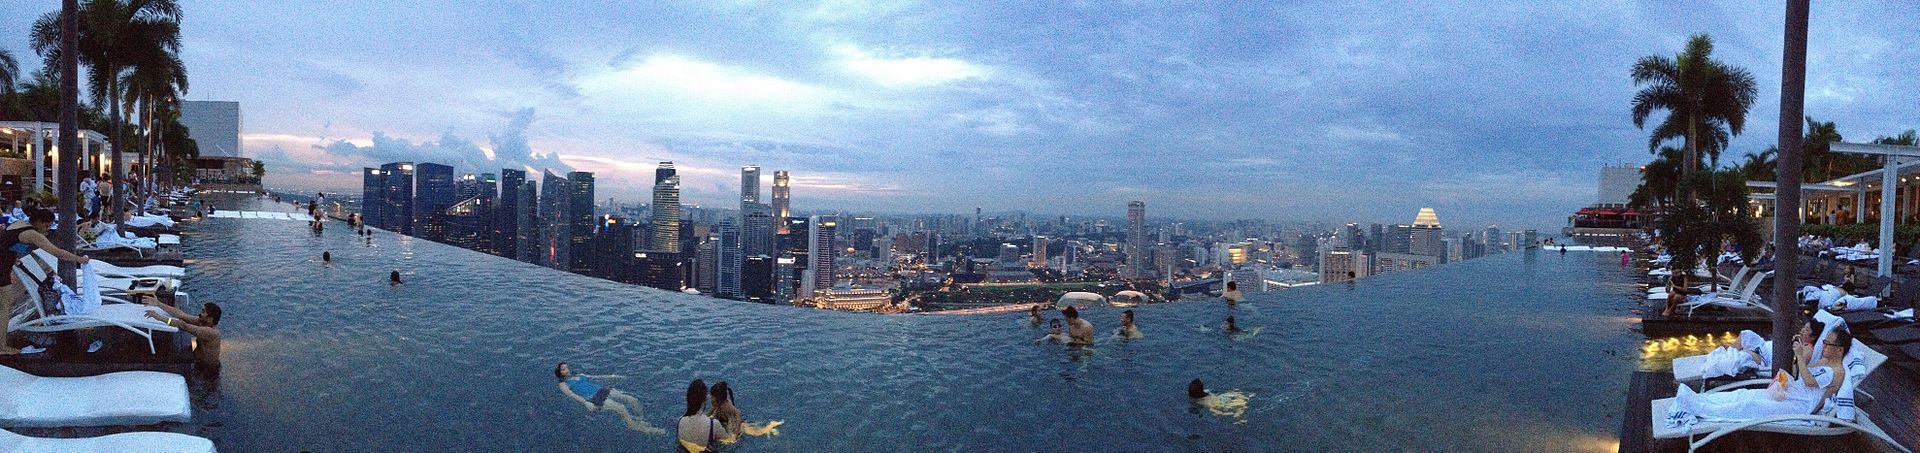 marina bay sands hotel pool panoramic